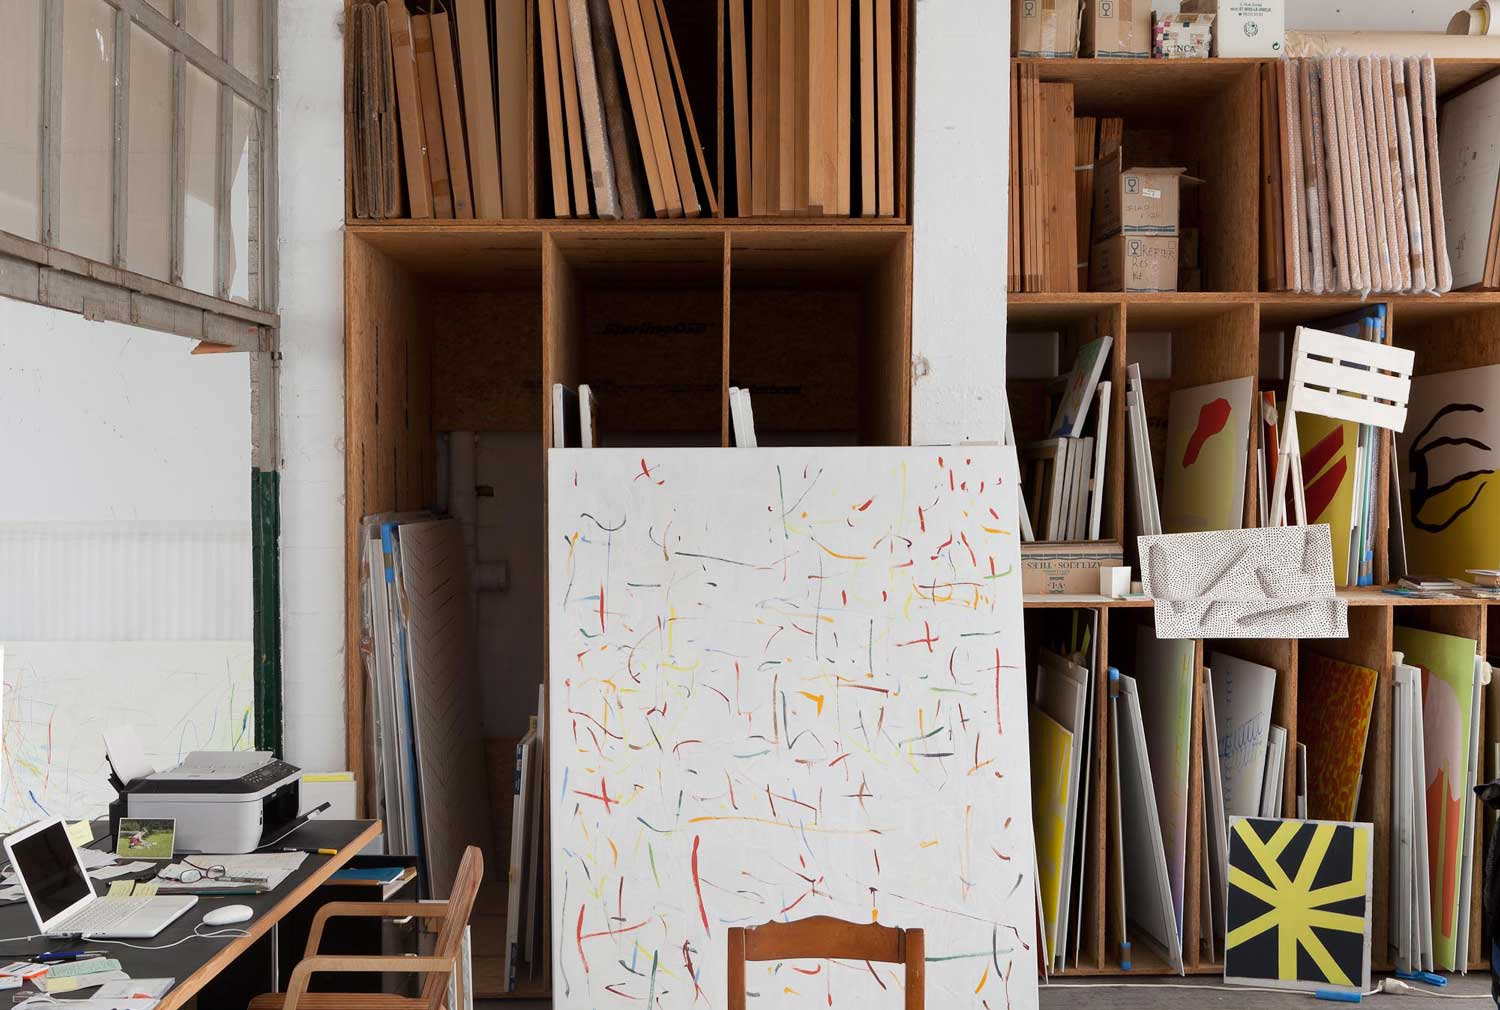 Benoît van Innis' Studio in Brussels | Yellowtrace